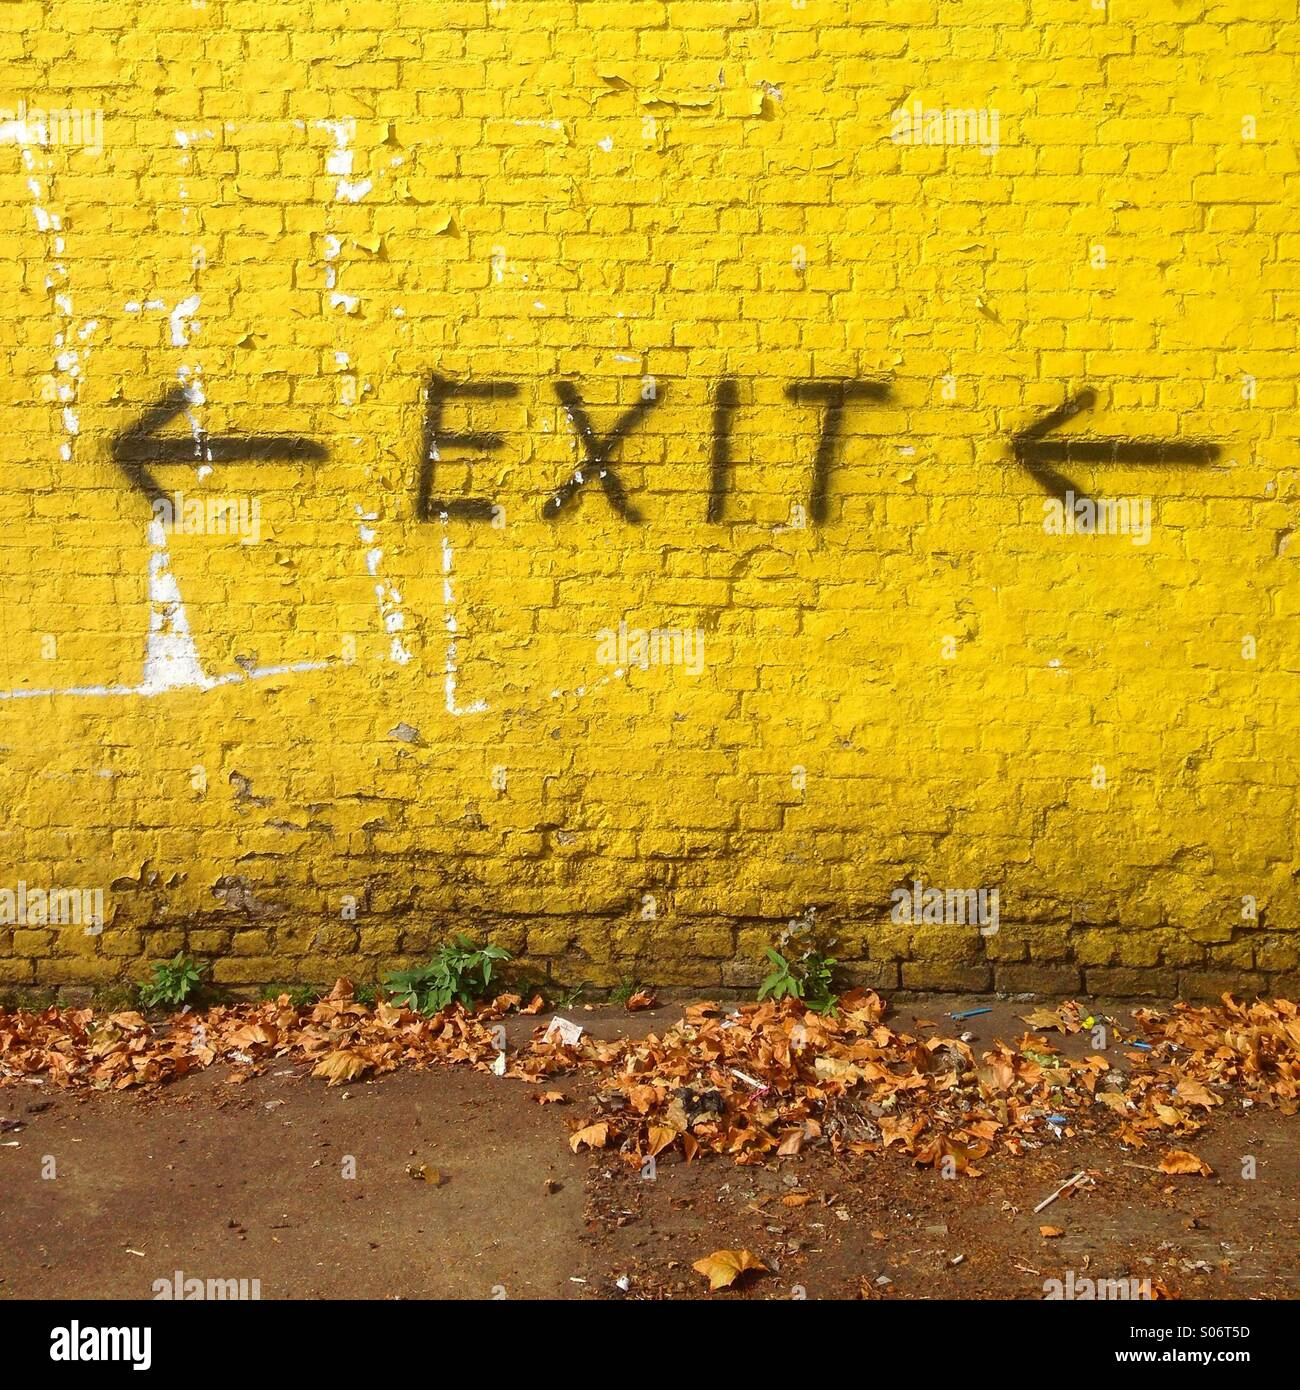 Exit sign. - Stock Image